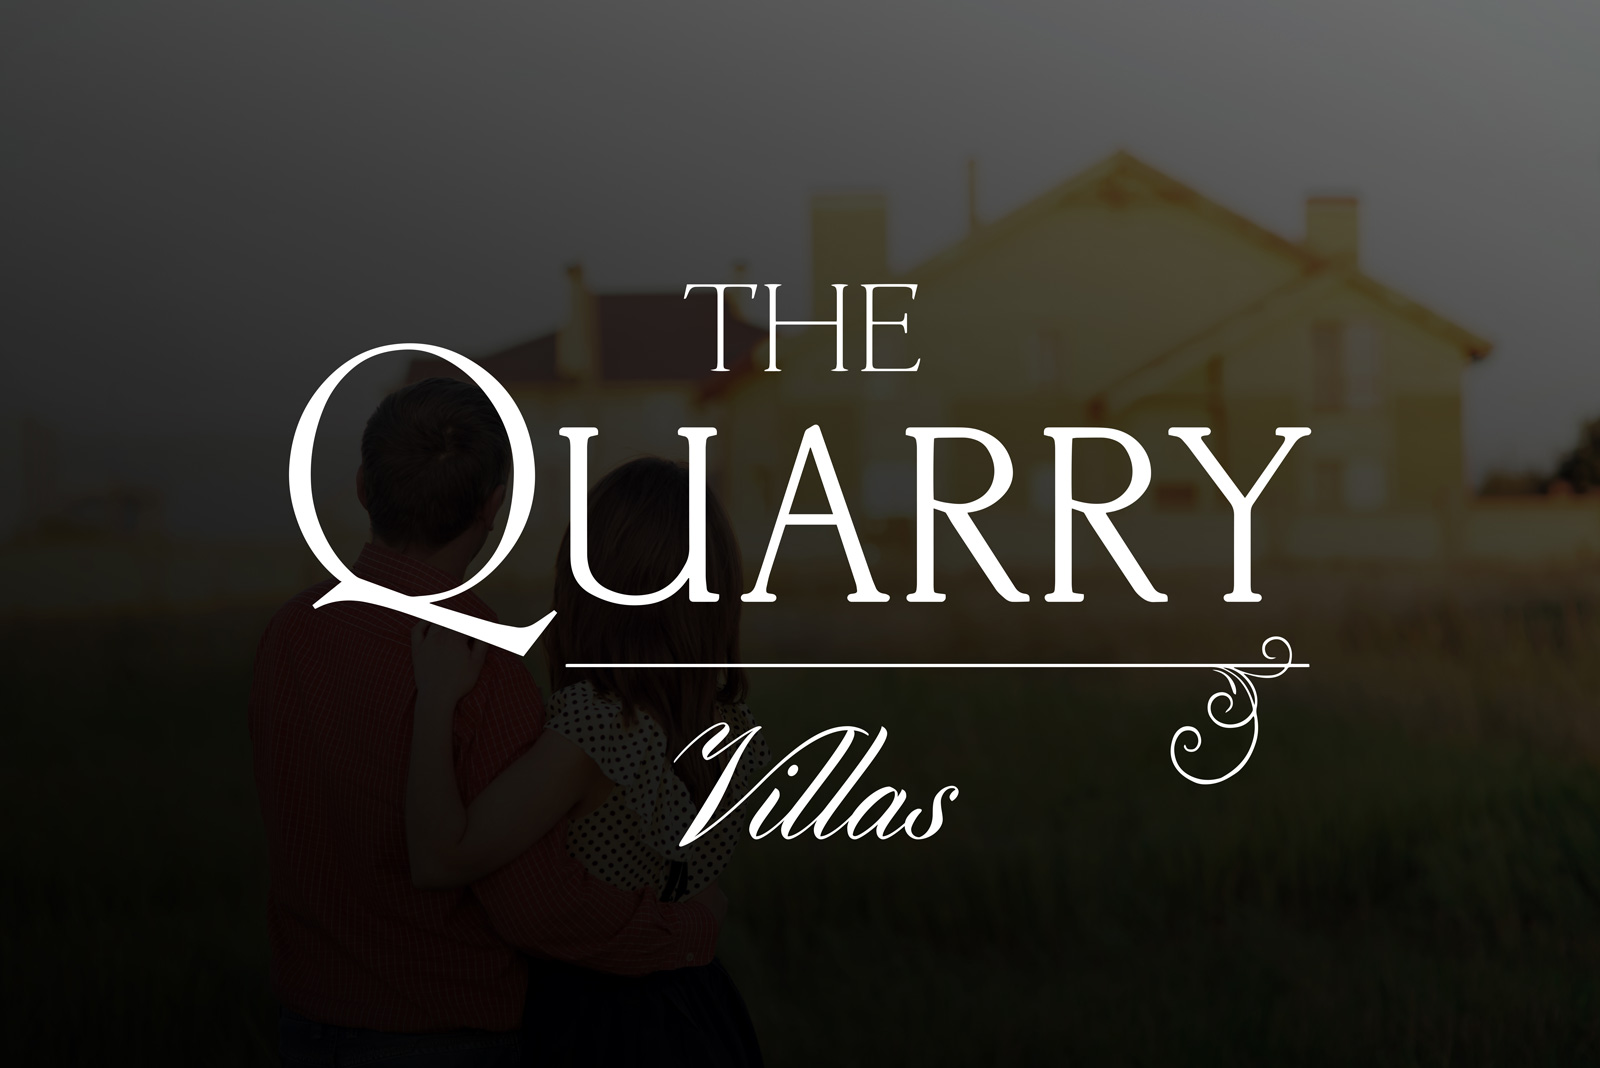 The Quarry Villas